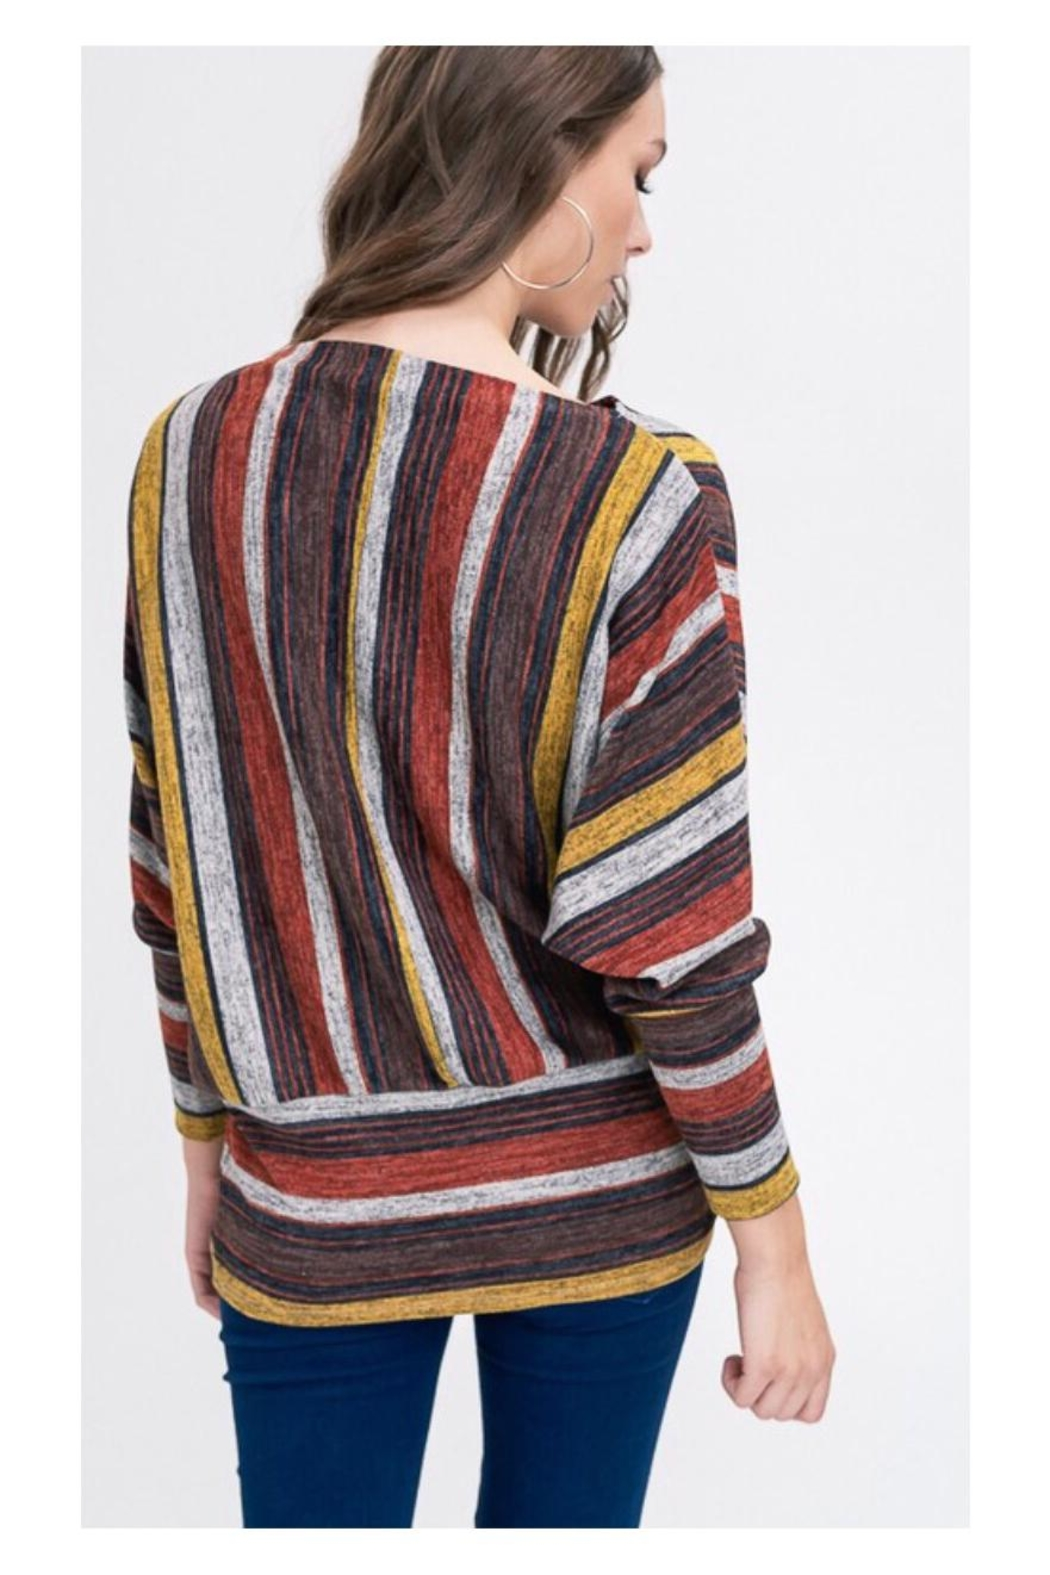 Polly & Esther Multicolor Stripe Top - Front Full Image